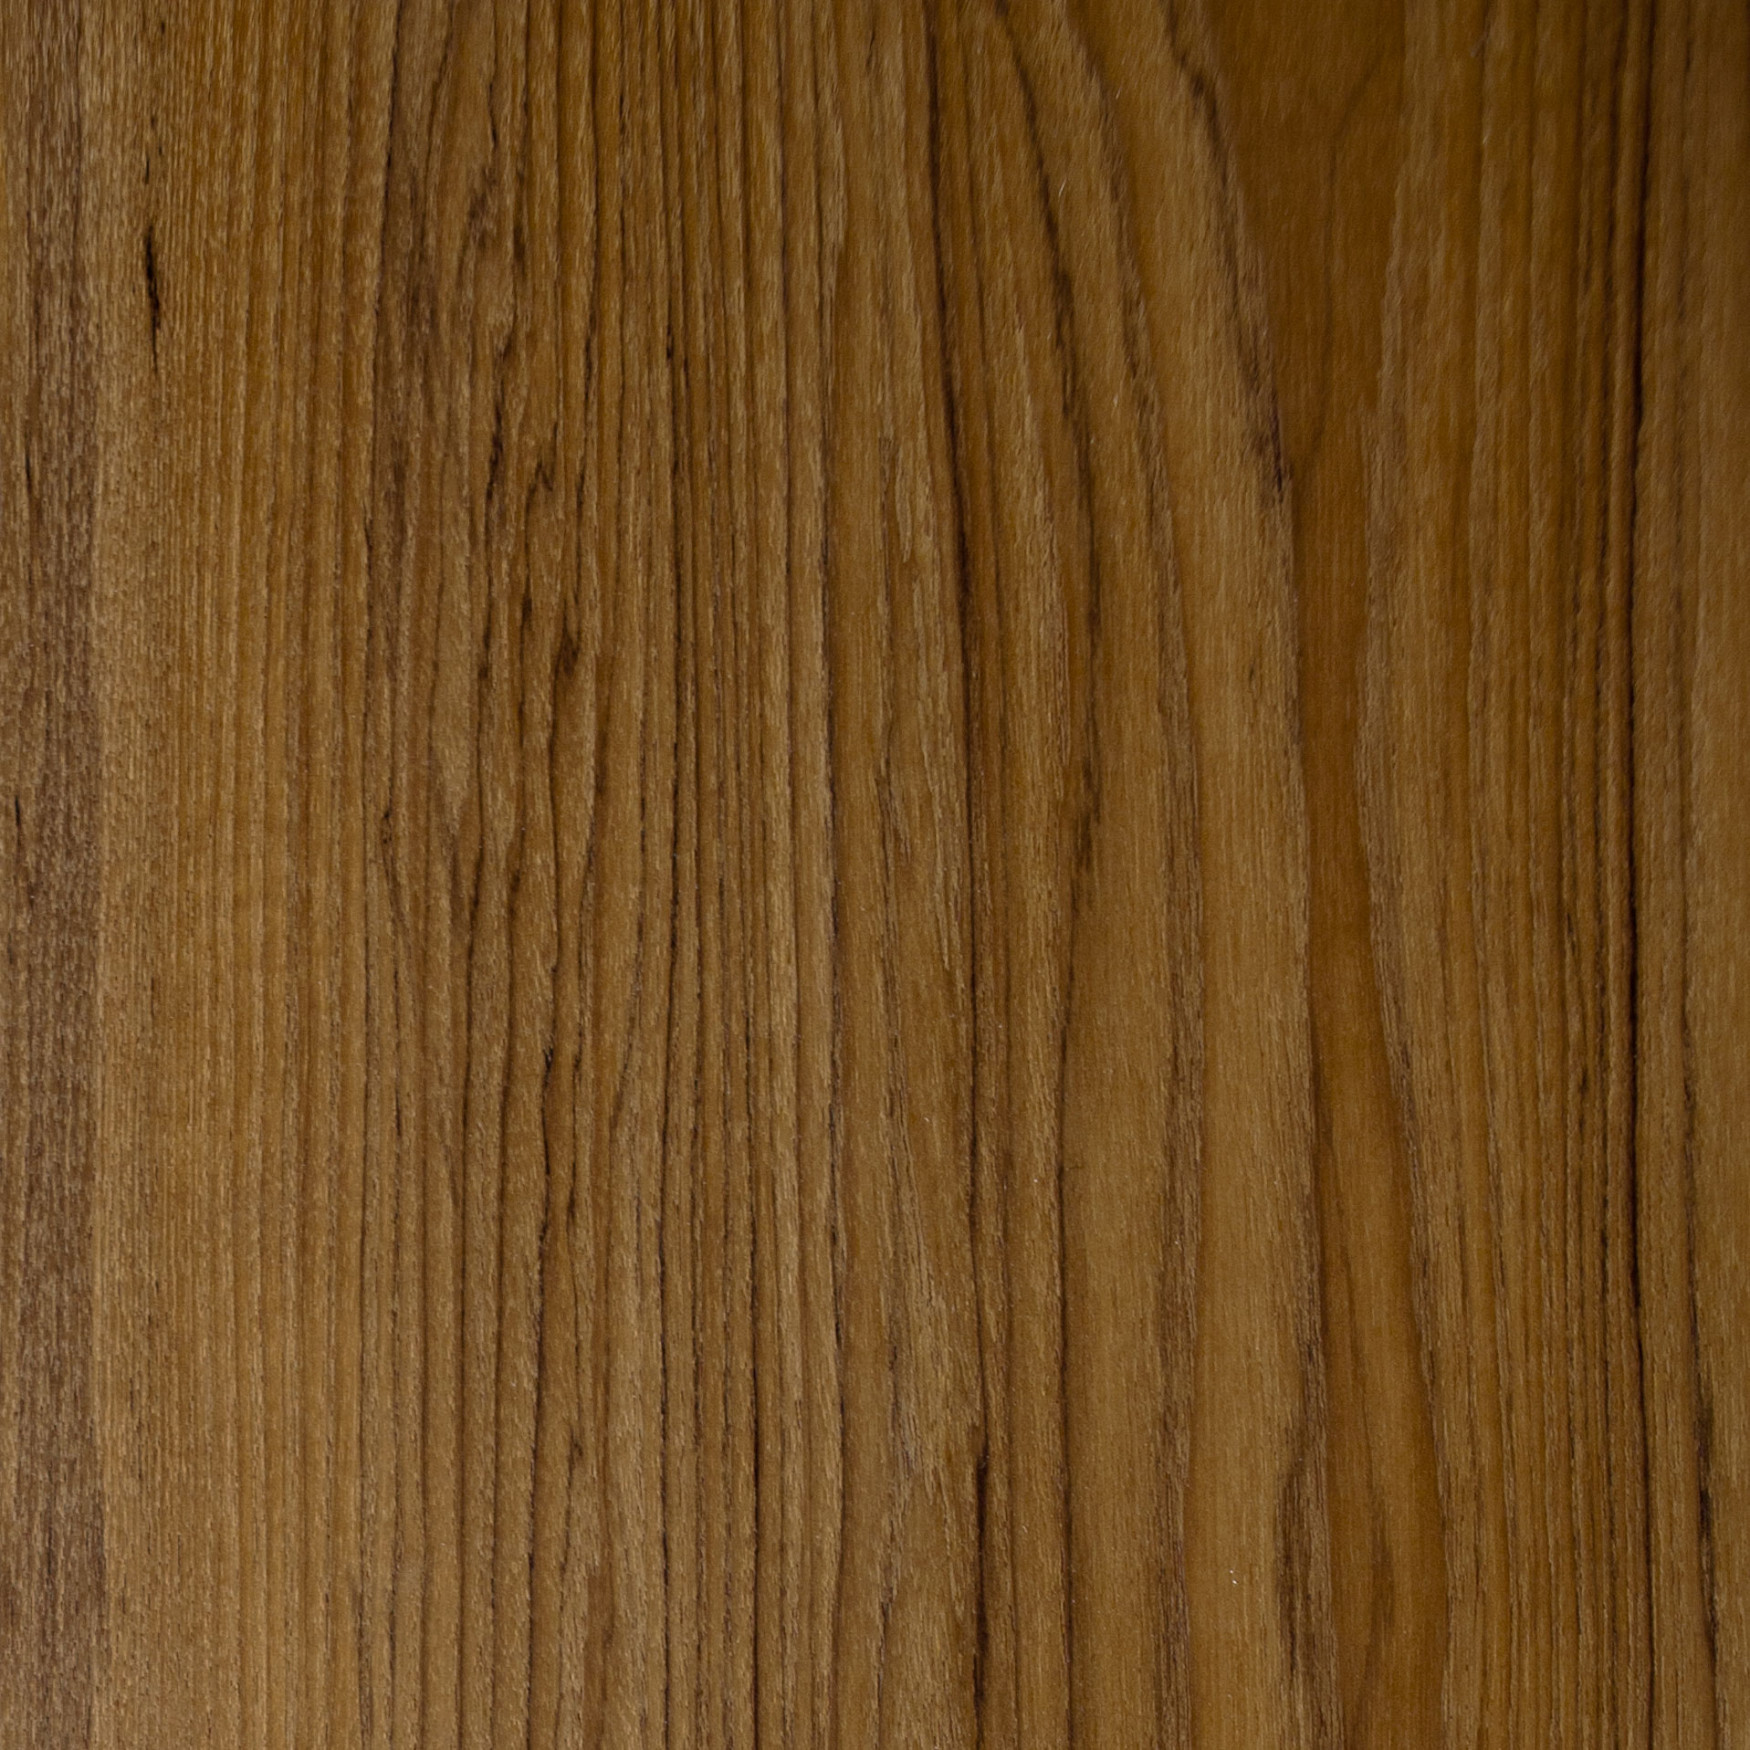 Element7-wide-plank-samples-burmese-teak-IMG_1930